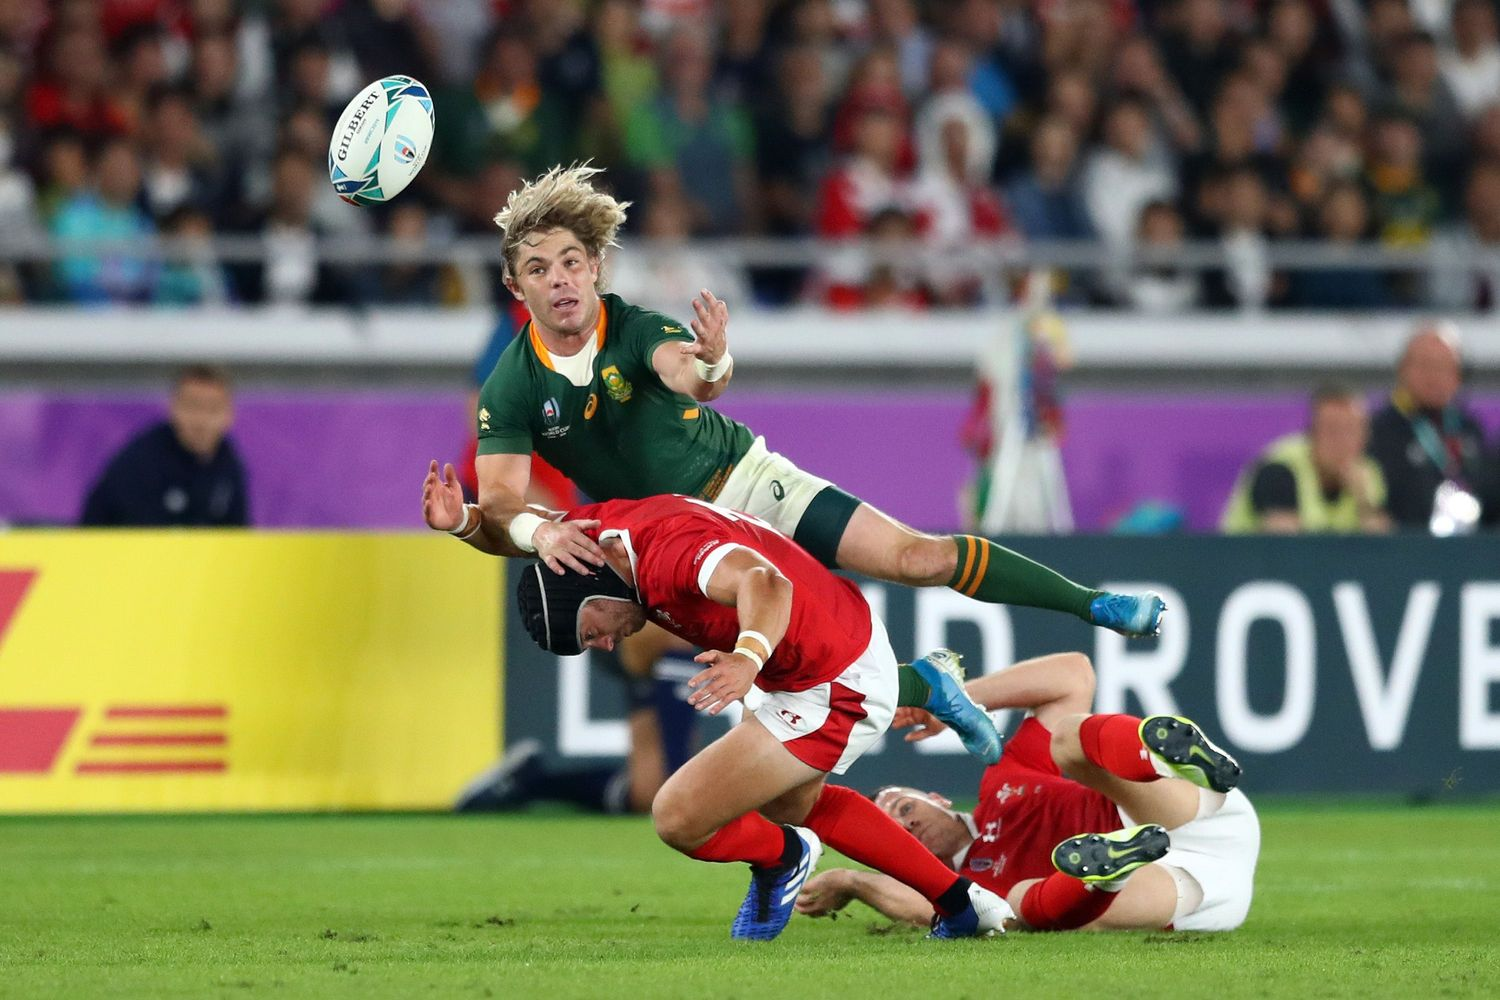 Gales vs Sudáfrica - Rugby World Cup 2019: Semifinal